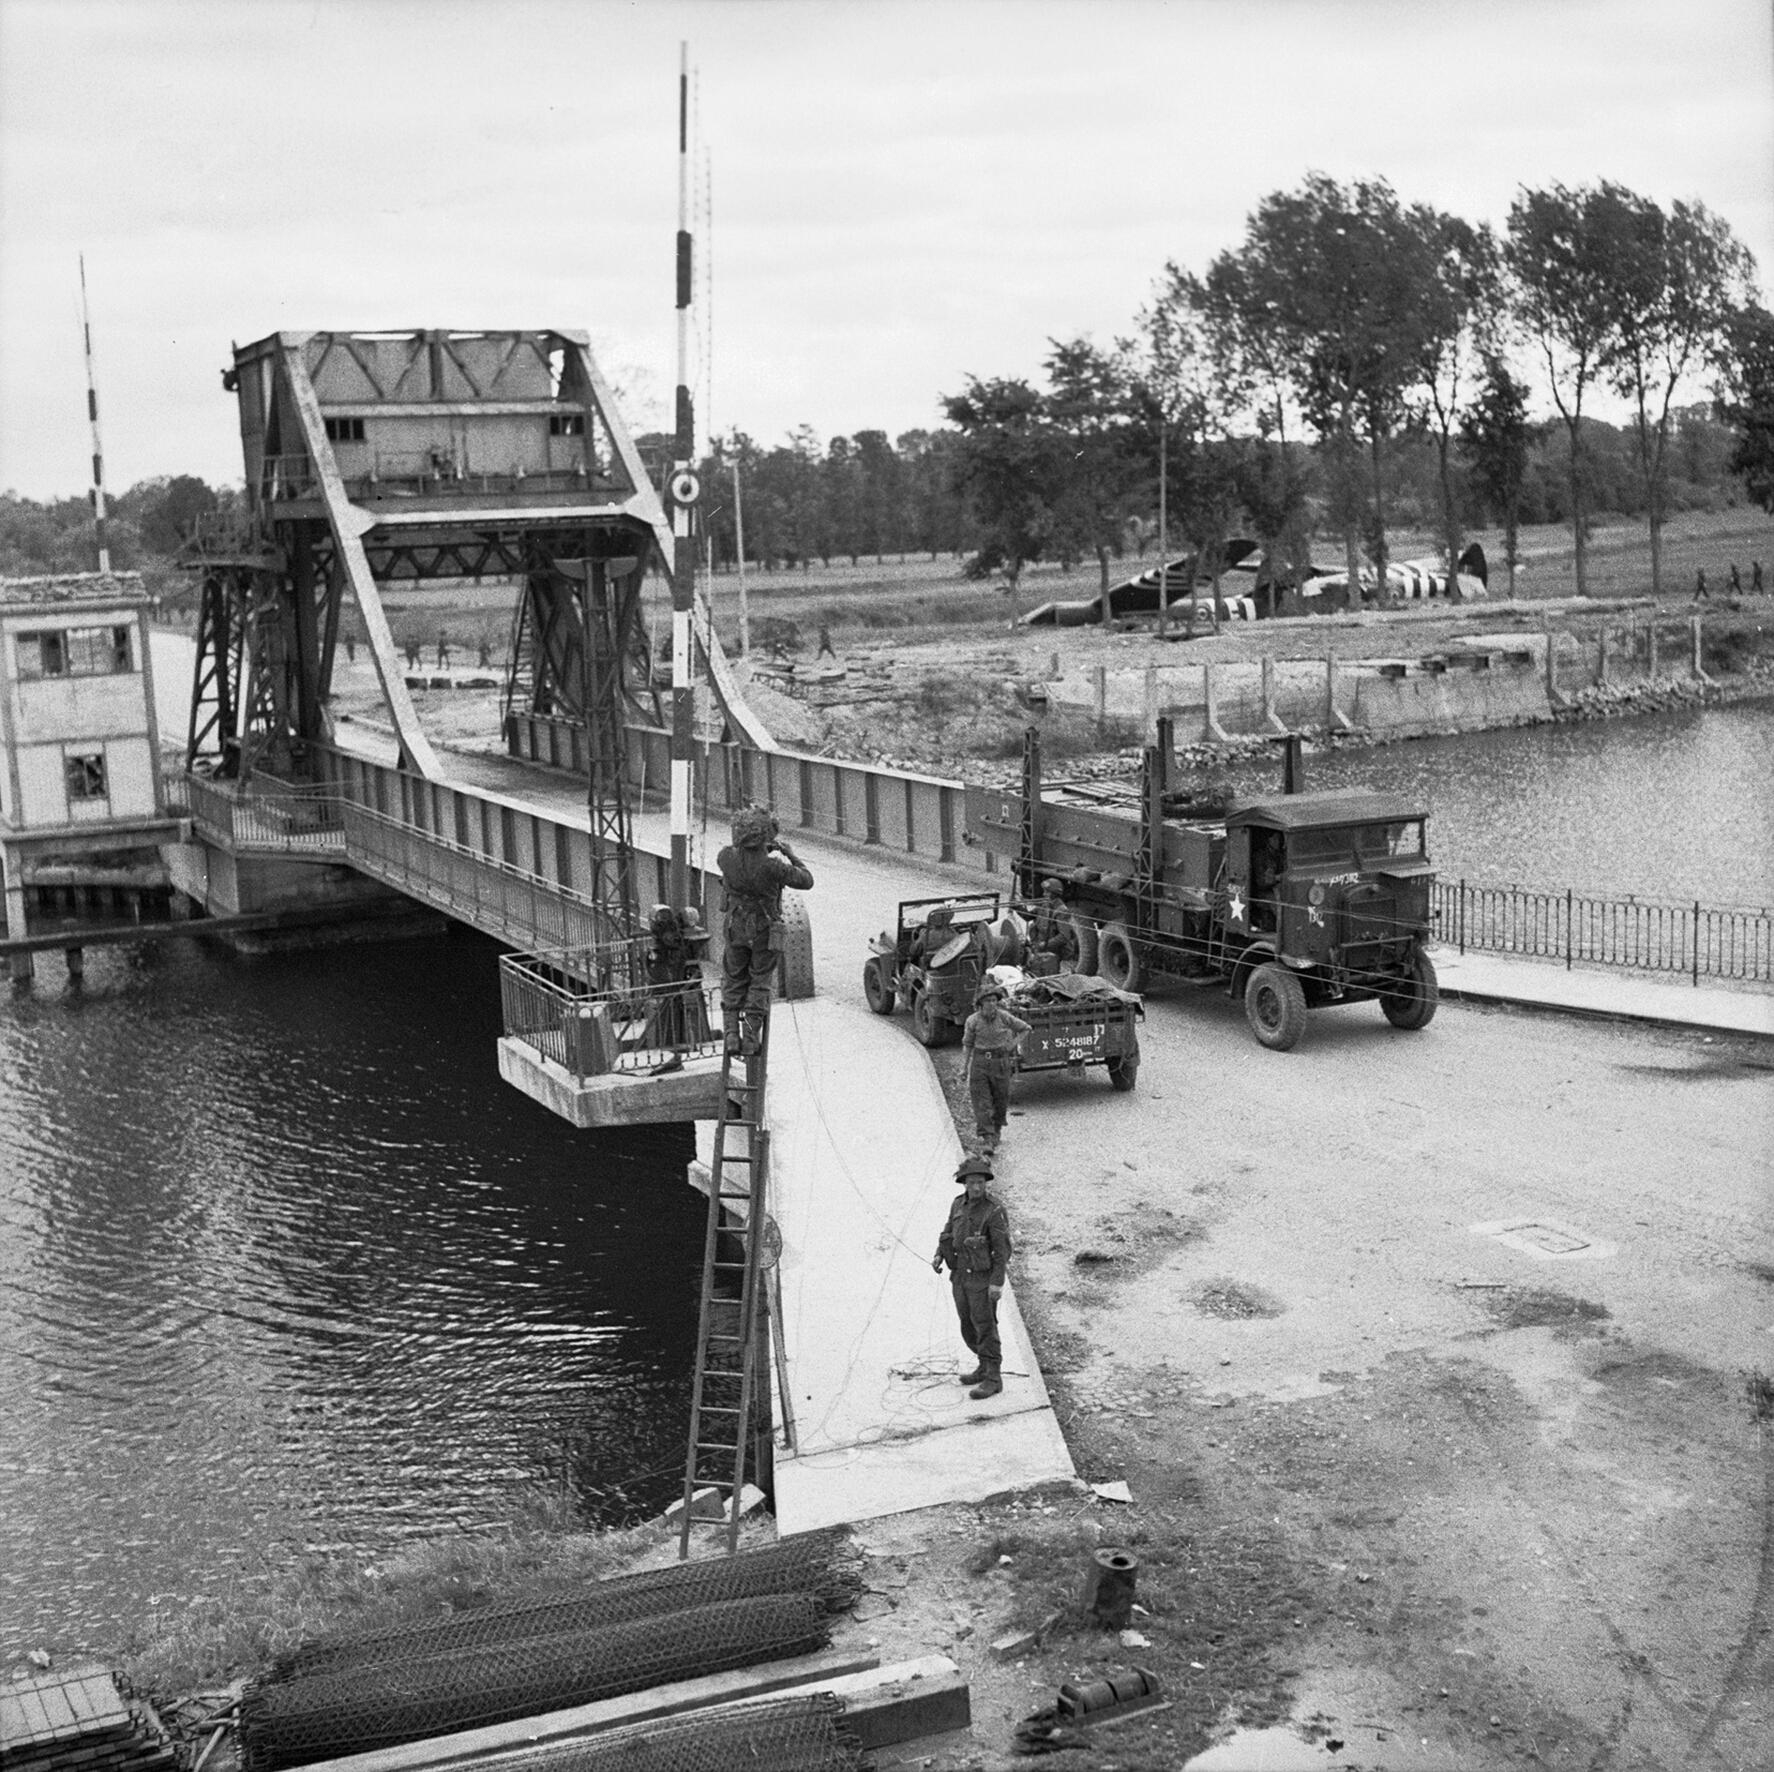 https://upload.wikimedia.org/wikipedia/commons/9/99/Pegasus_Bridge%2C_June_1944_B5288.jpg